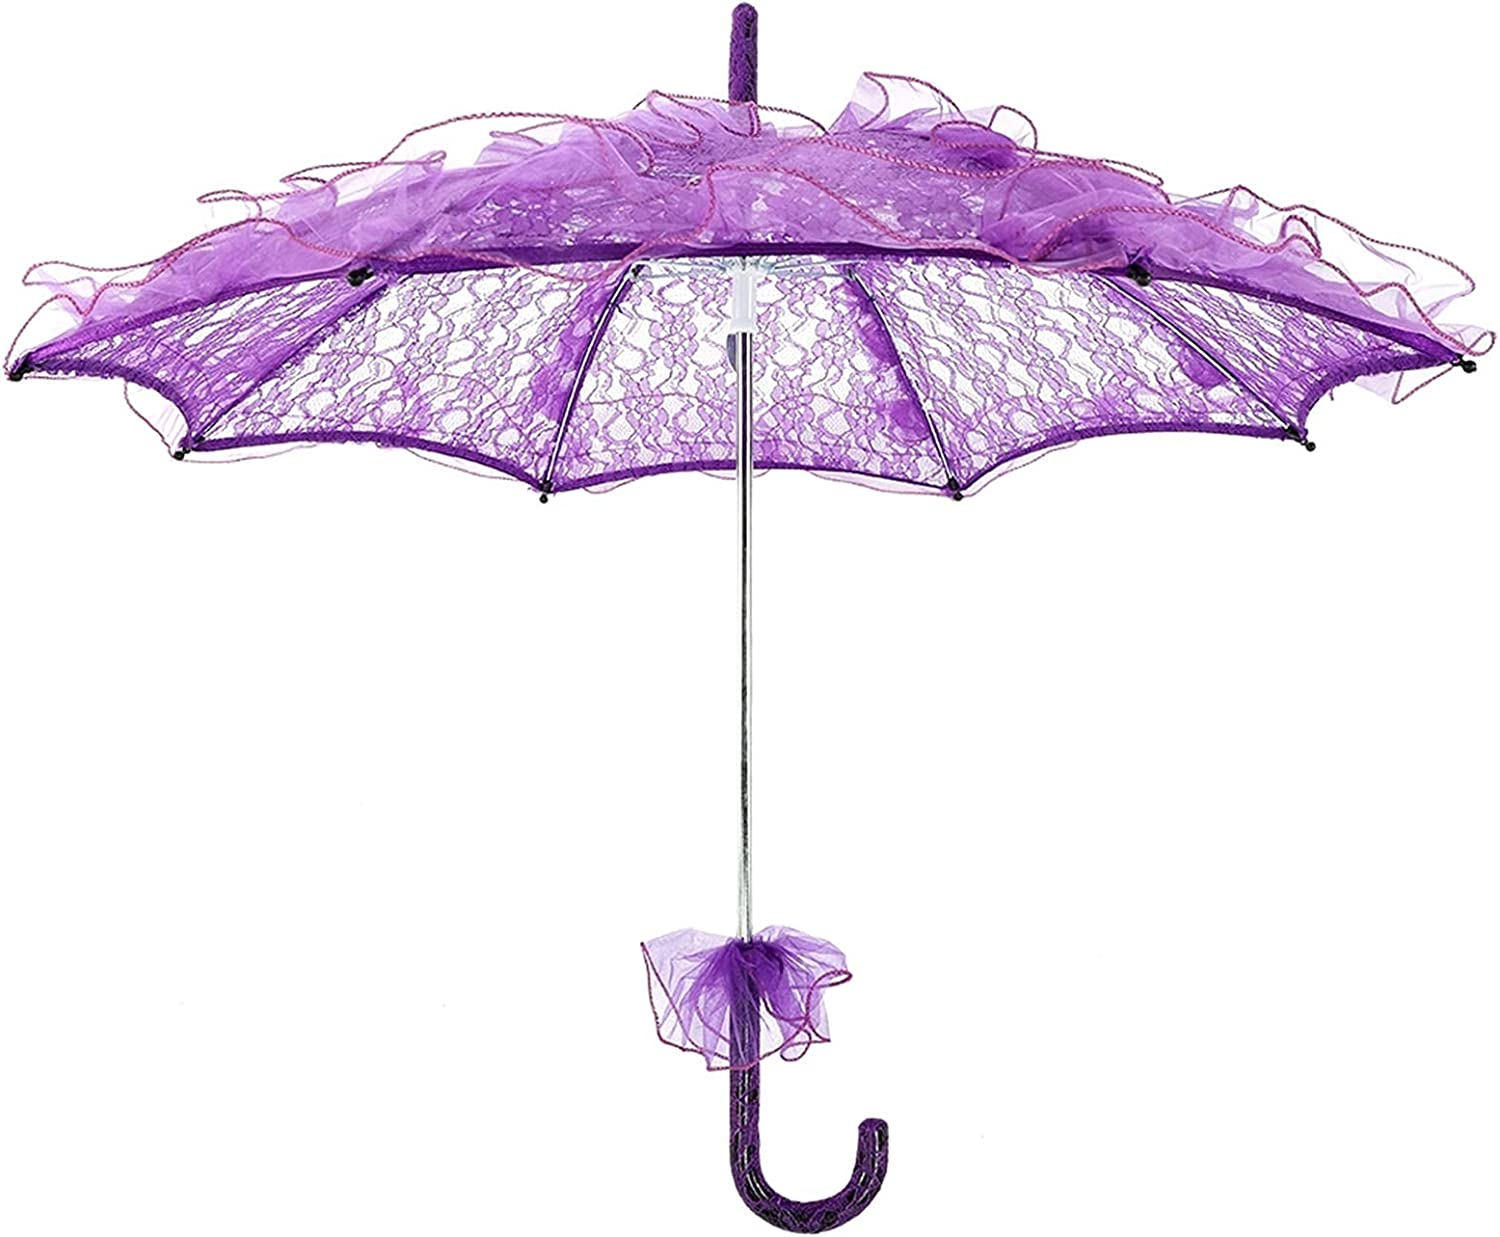 Raleigh Mall KANGDILE Wedding Umbrella Elegant Rare and Paras Floral Stylish Lace